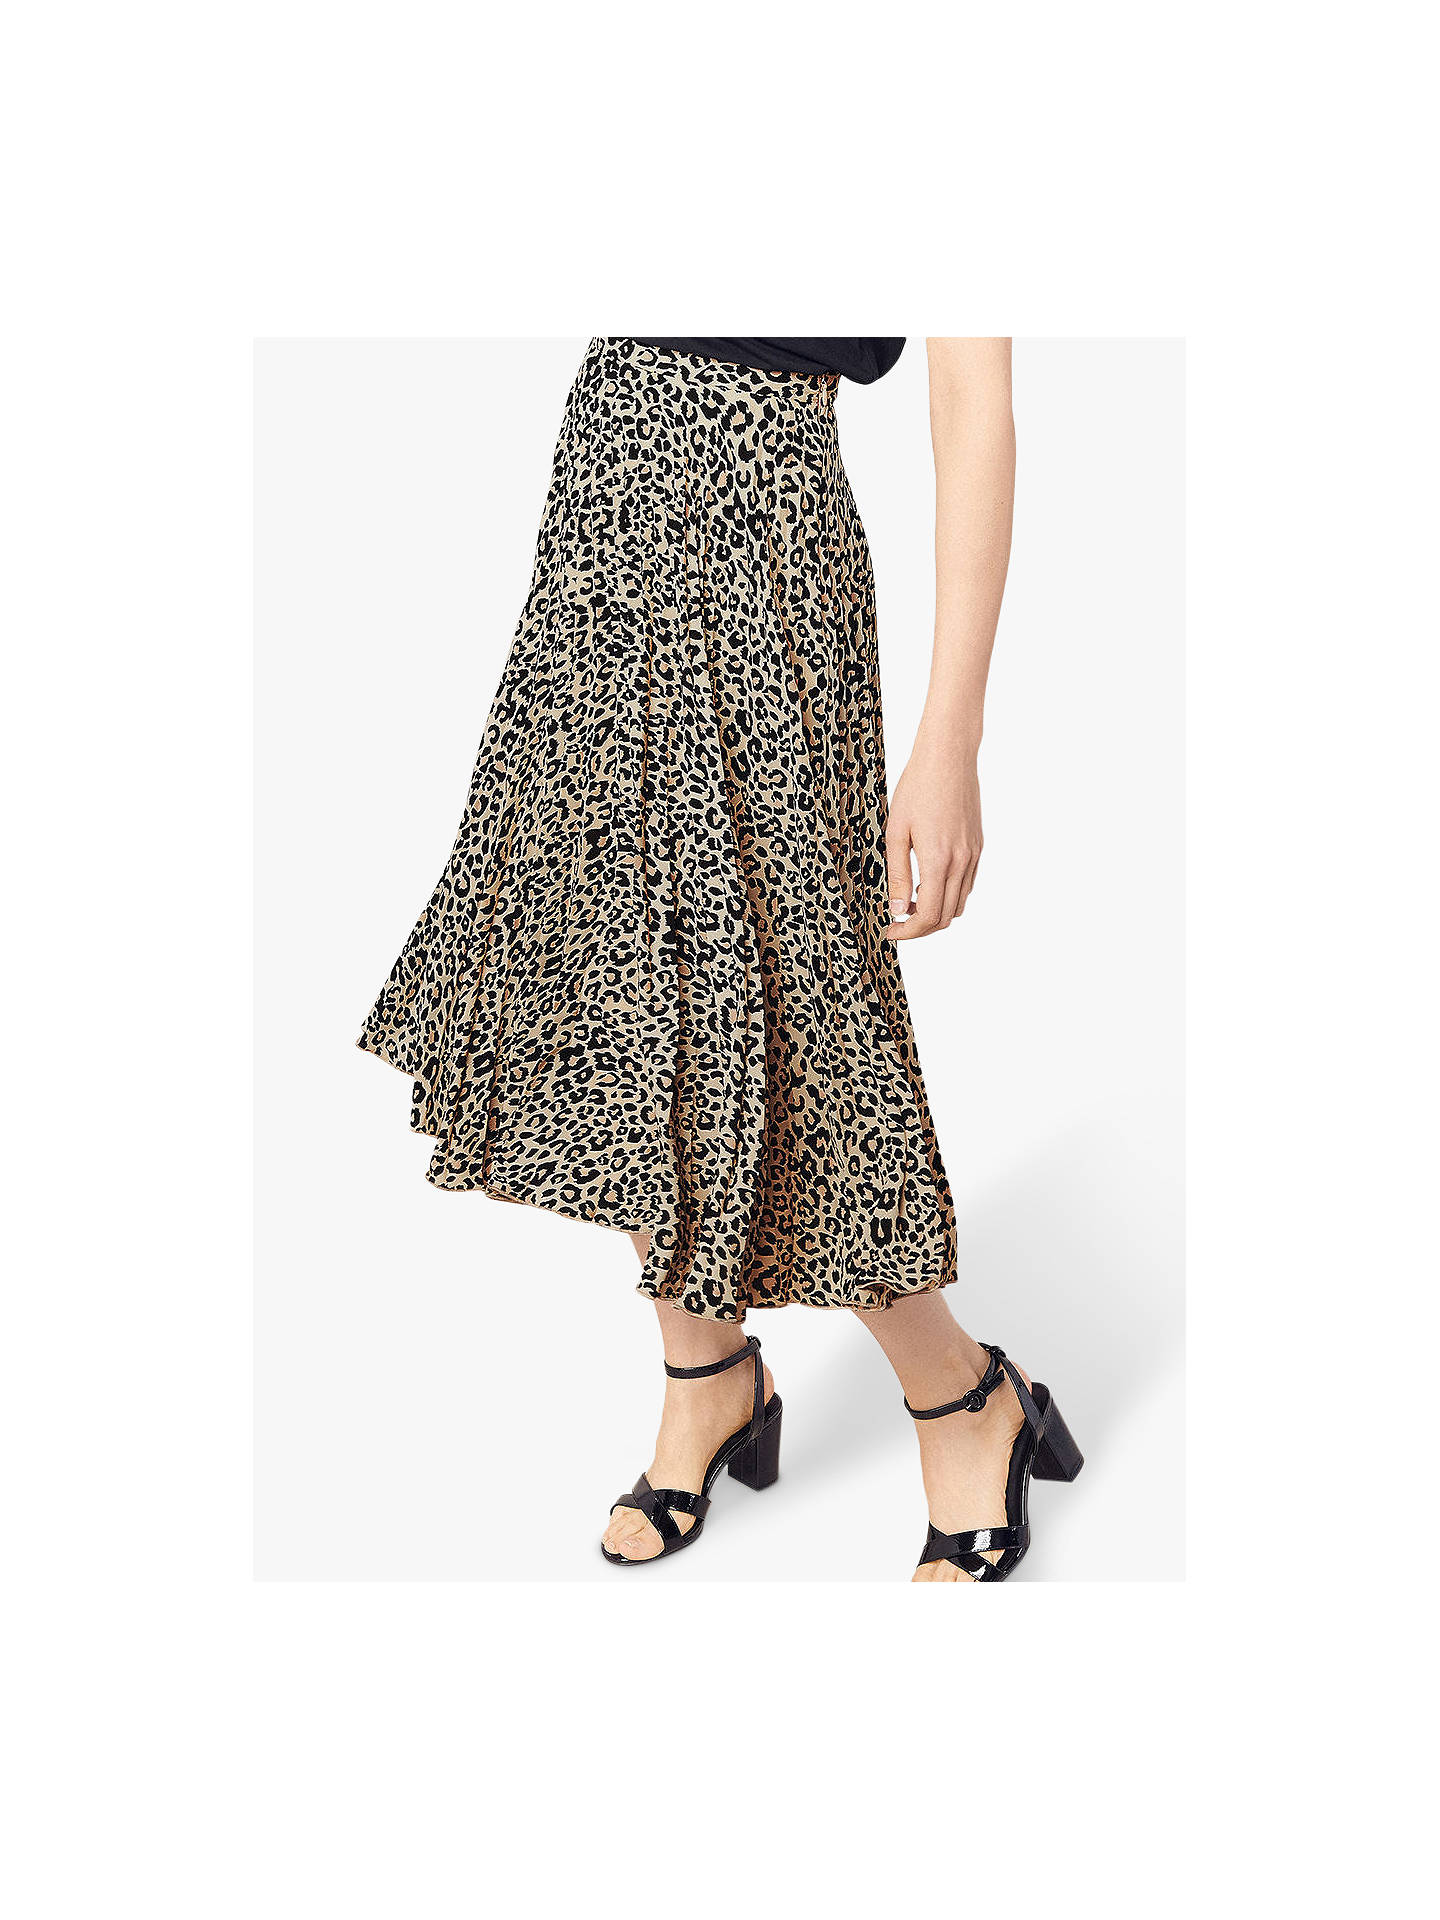 ad05bbe14dd3 Buy Oasis Animal Print Pleat Skirt, Multi, 8 Online at johnlewis.com ...